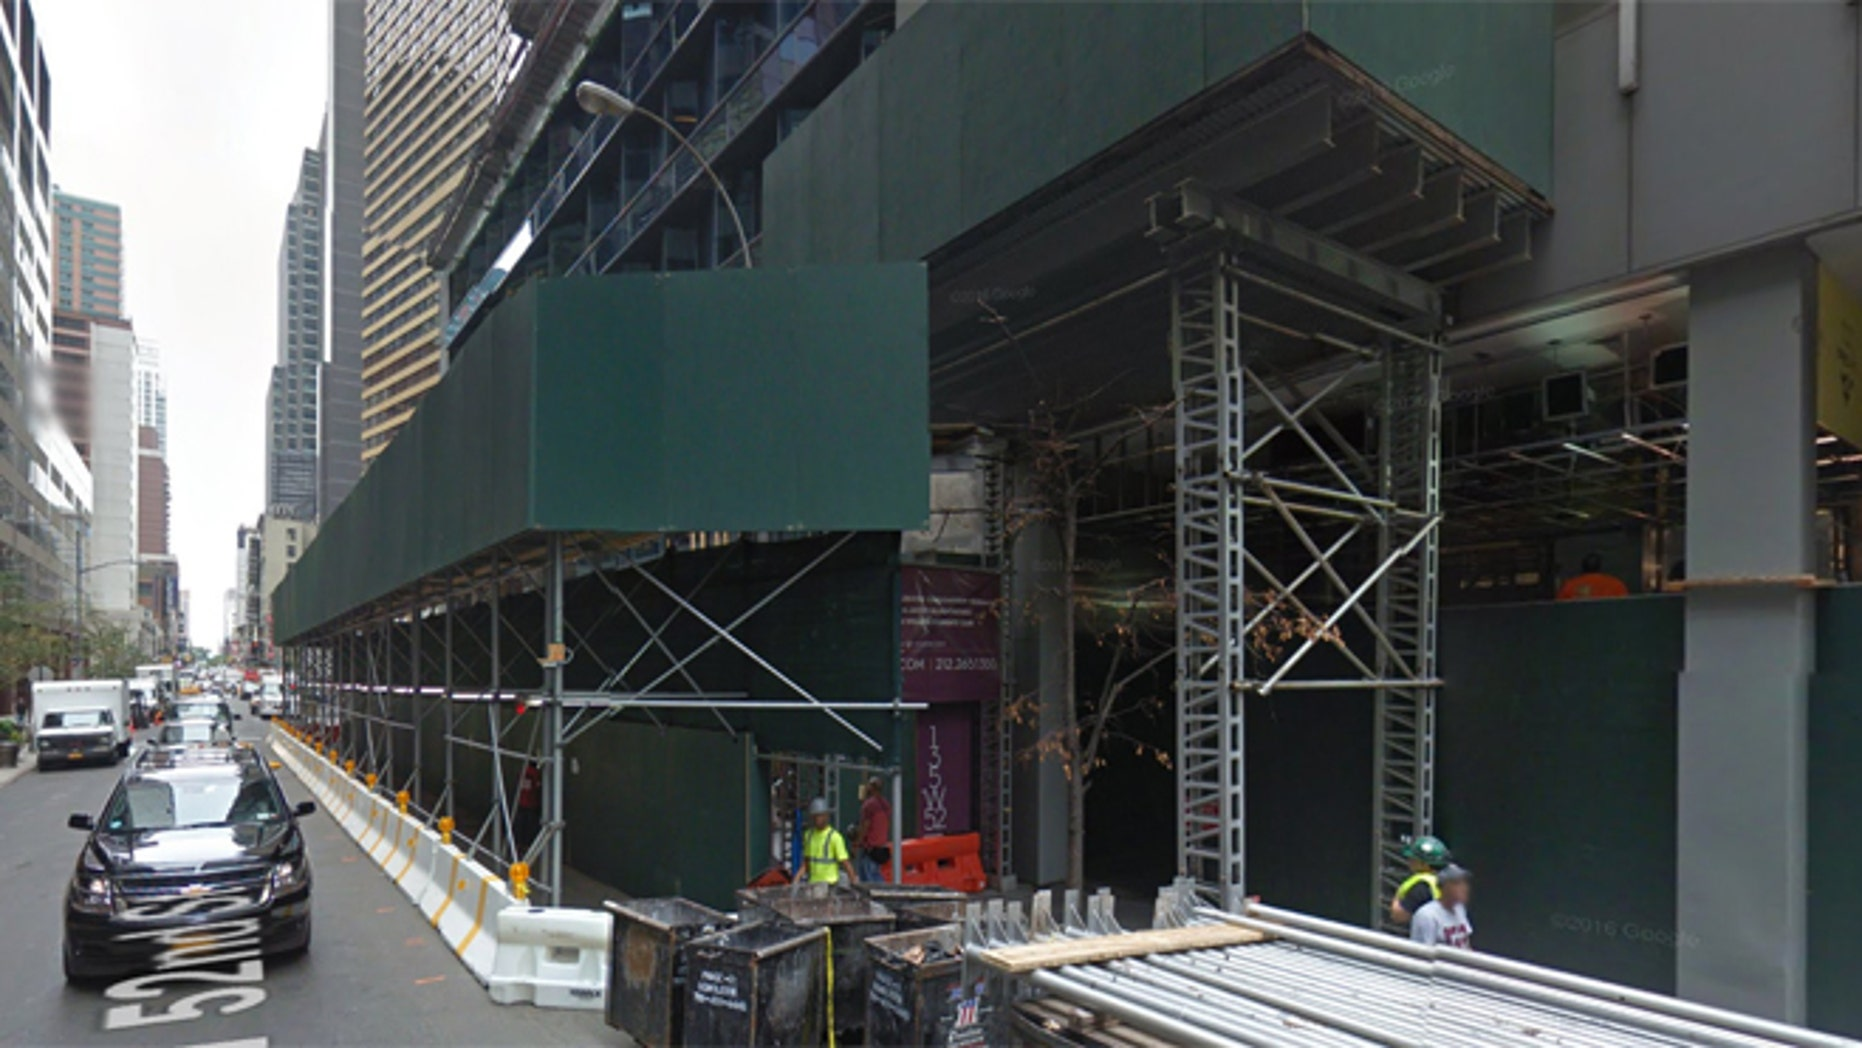 Building on W. 52nd Street in New York City where an architect fell to his death Thursday. (Google Street View)